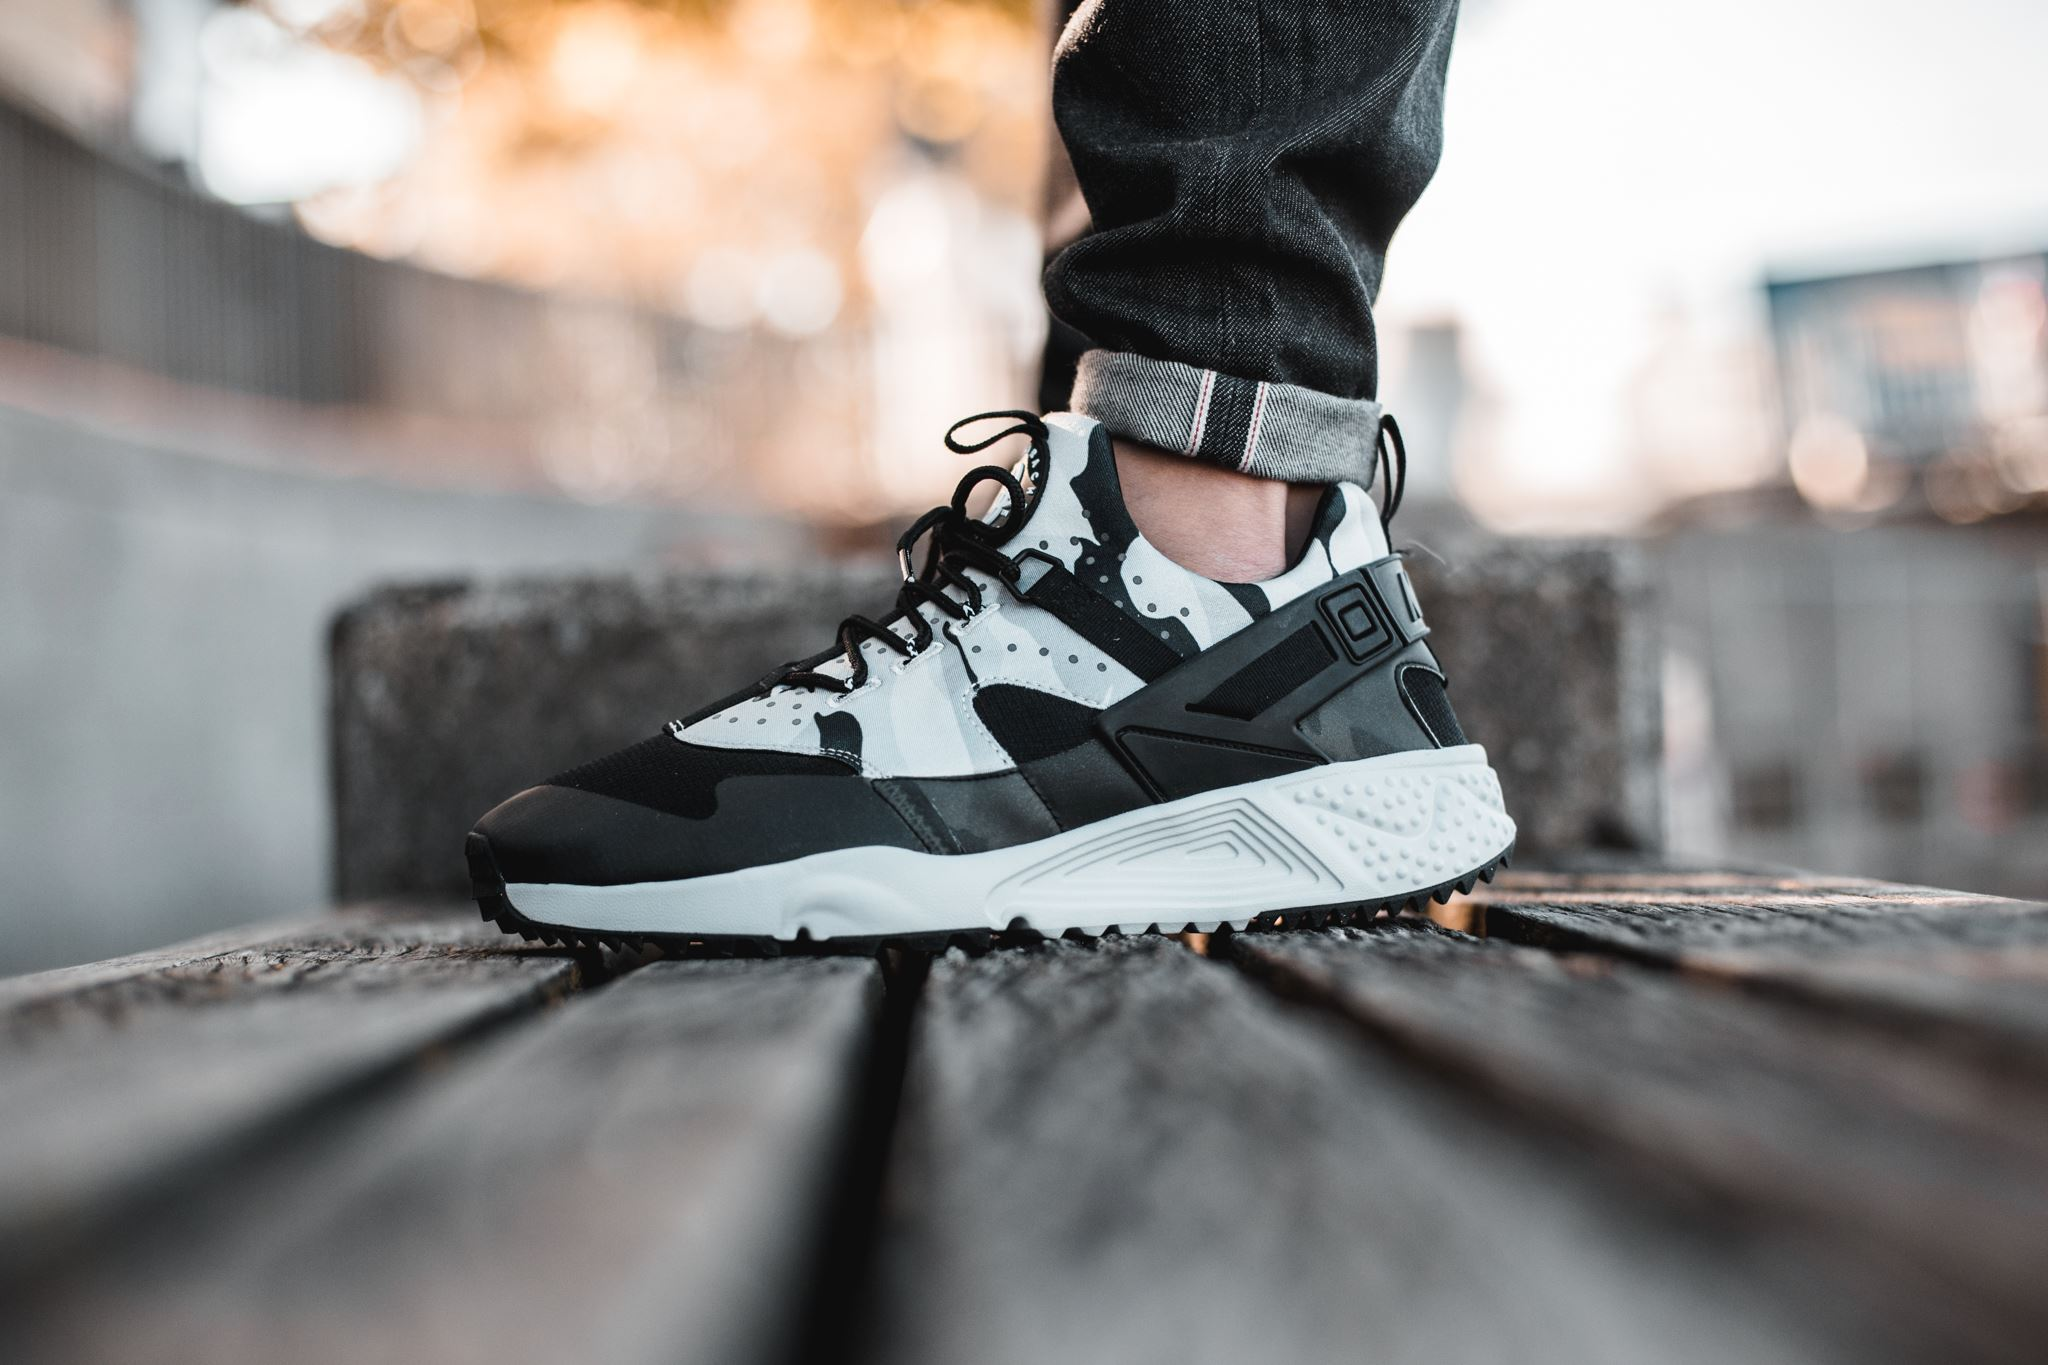 Nike Air Huarache Utility: In late 2015 the Huarache Utility was released  with a modified sole but with the classic heel strap and also a one part  neoprene ...